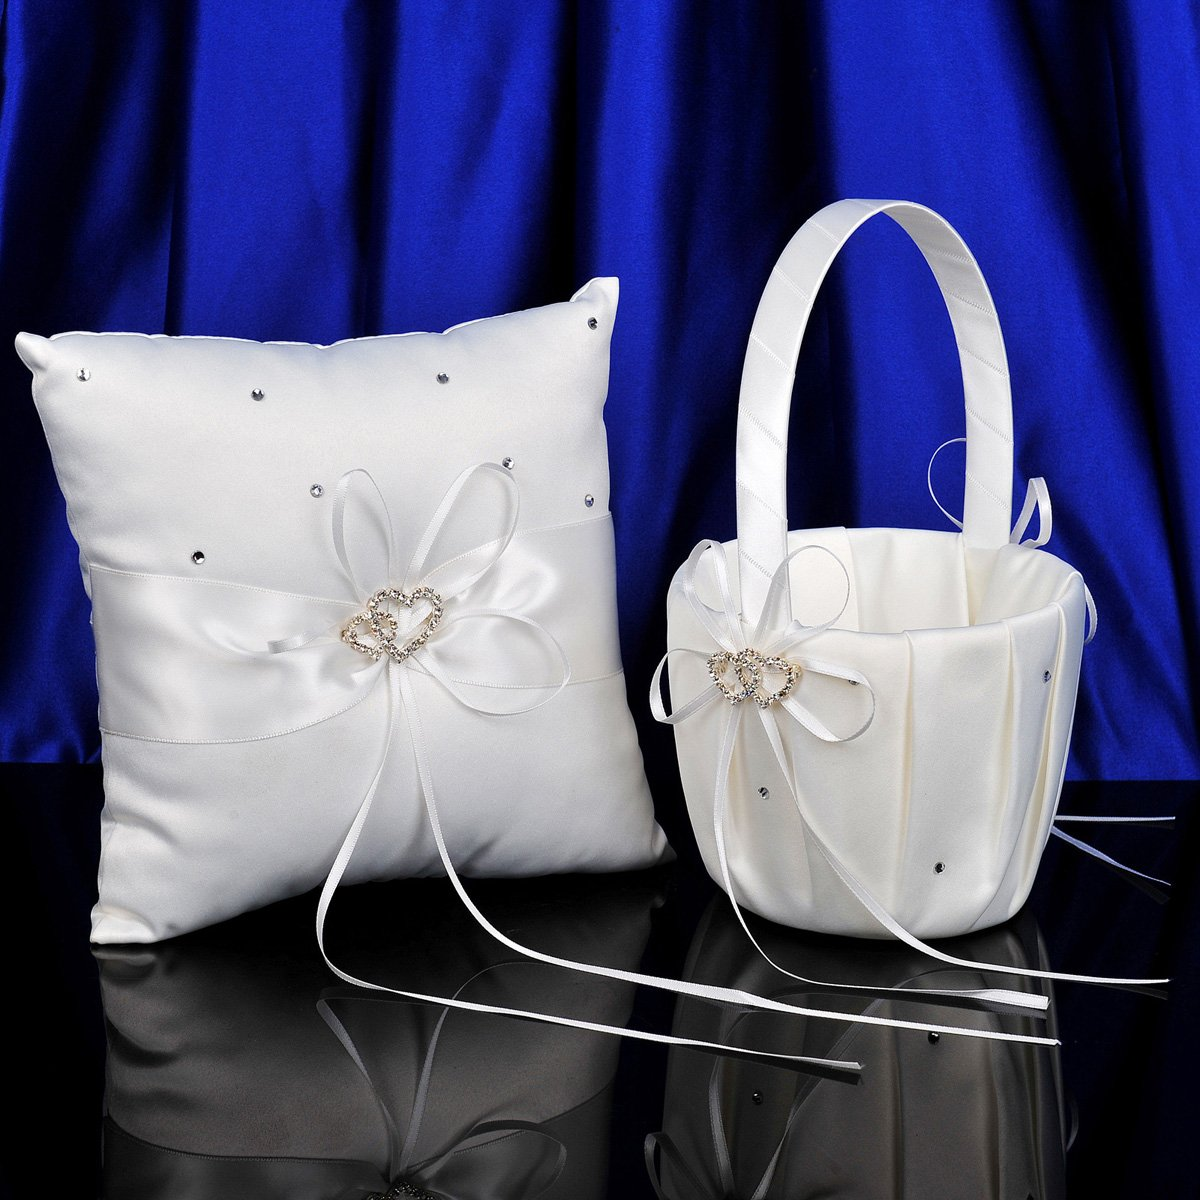 Remedios 2 Heart Rhinestones Ivory Satin Flower Girl Basket and Ring Pillow Set by Remedios